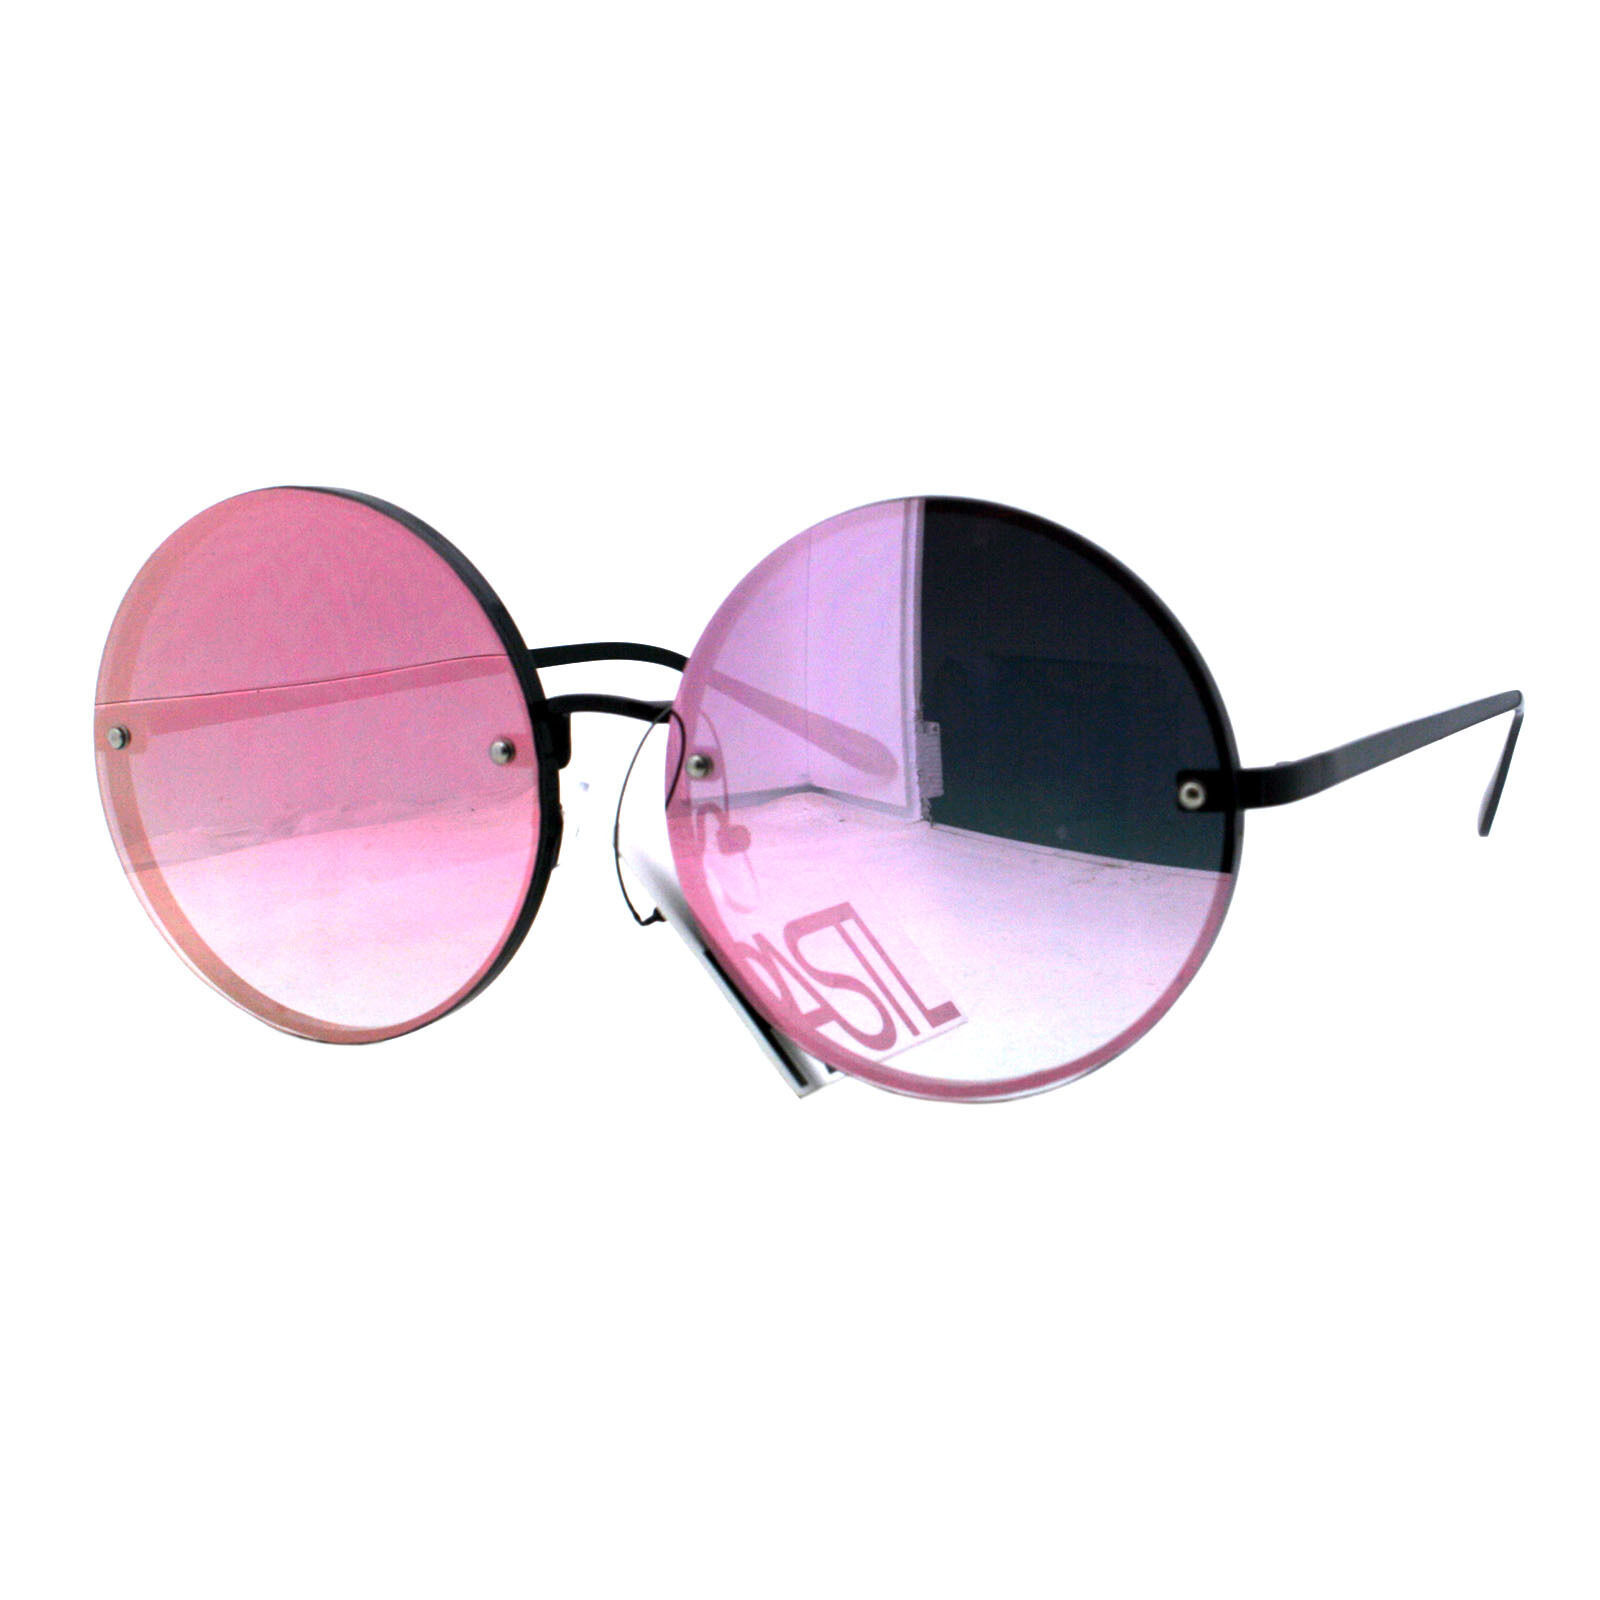 PASTL Super Oversized Round Sunglasses Womens Pink Mirror Lens UV 400 image 2